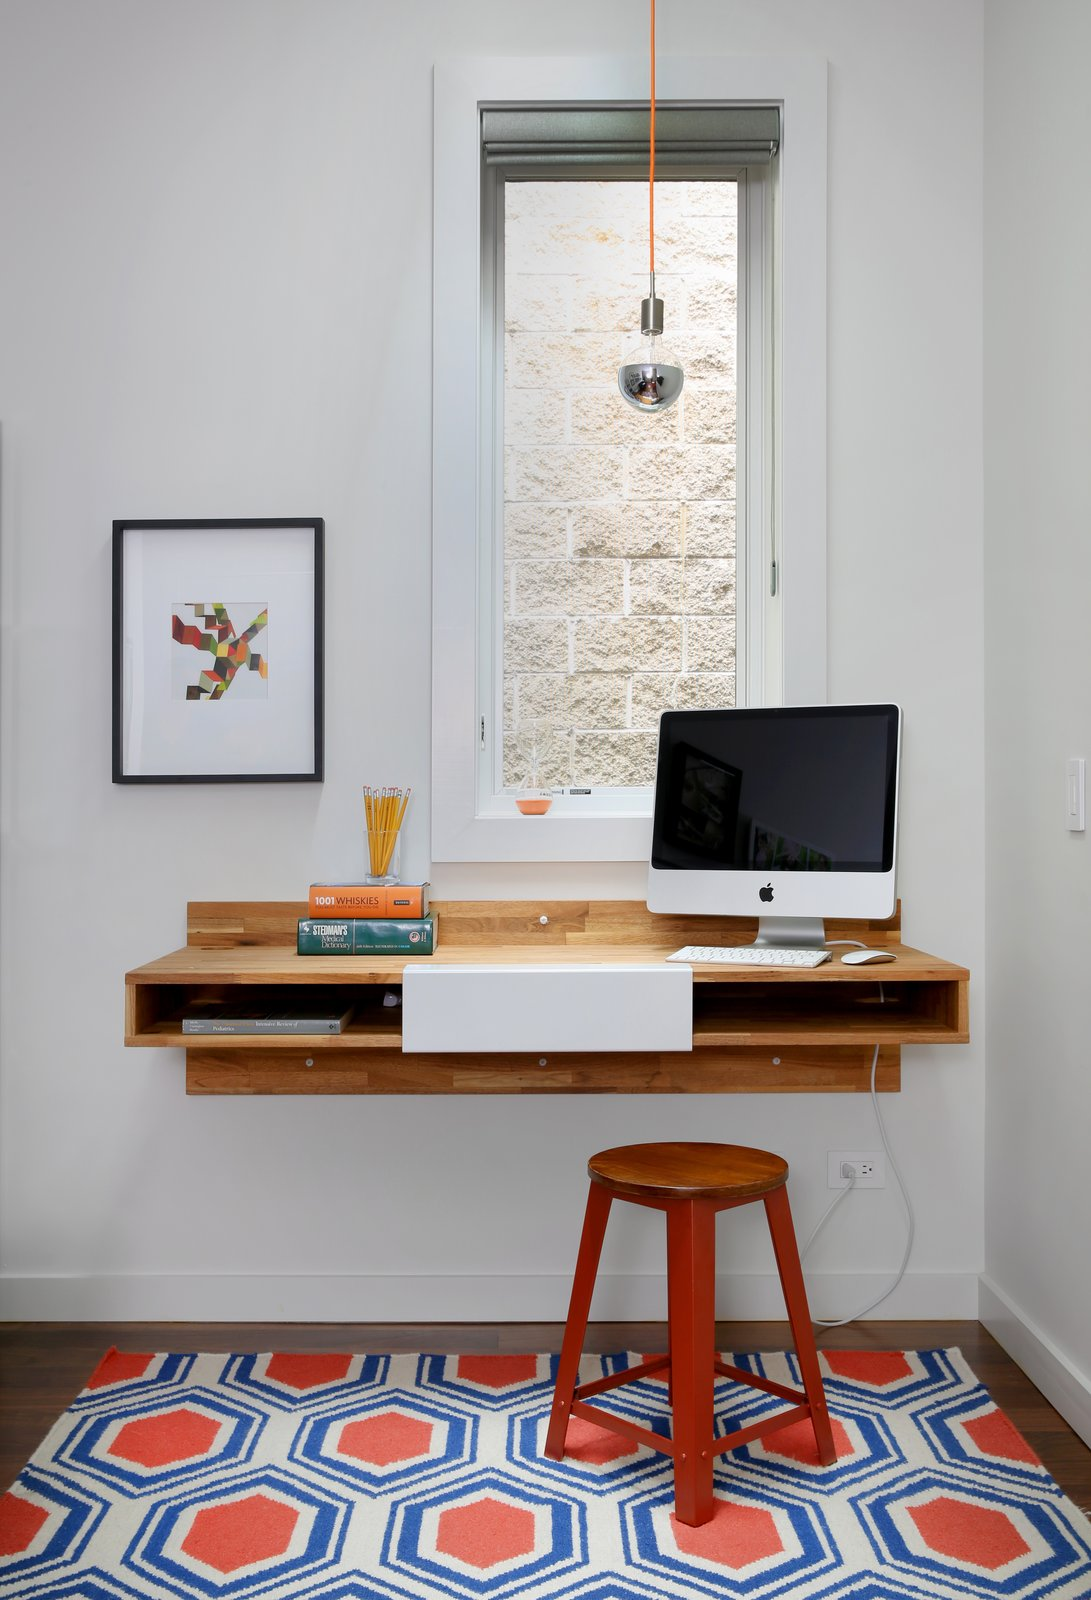 Office, Study Room Type, Desk, Rug Floor, and Dark Hardwood Floor A Mash Studio Wall-Mounted desk offers a place to study. The rug is from One King's Lane and a SoCo Modern Socket pendant illuminates the room.  Lakeview by Diana Budds